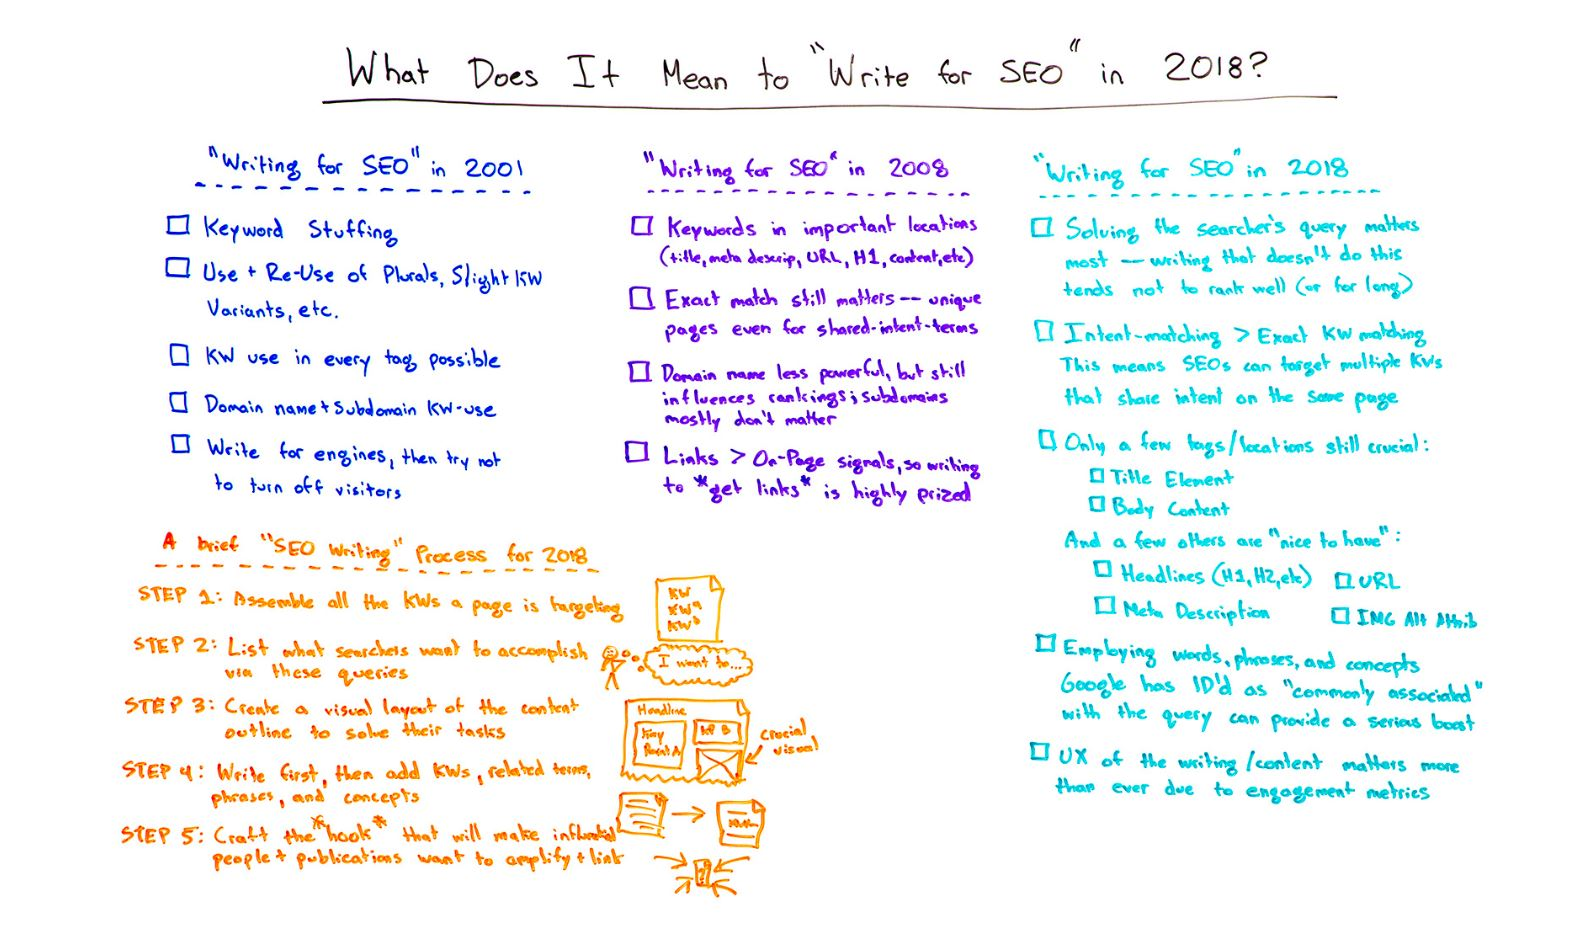 Moz SEO whiteboard